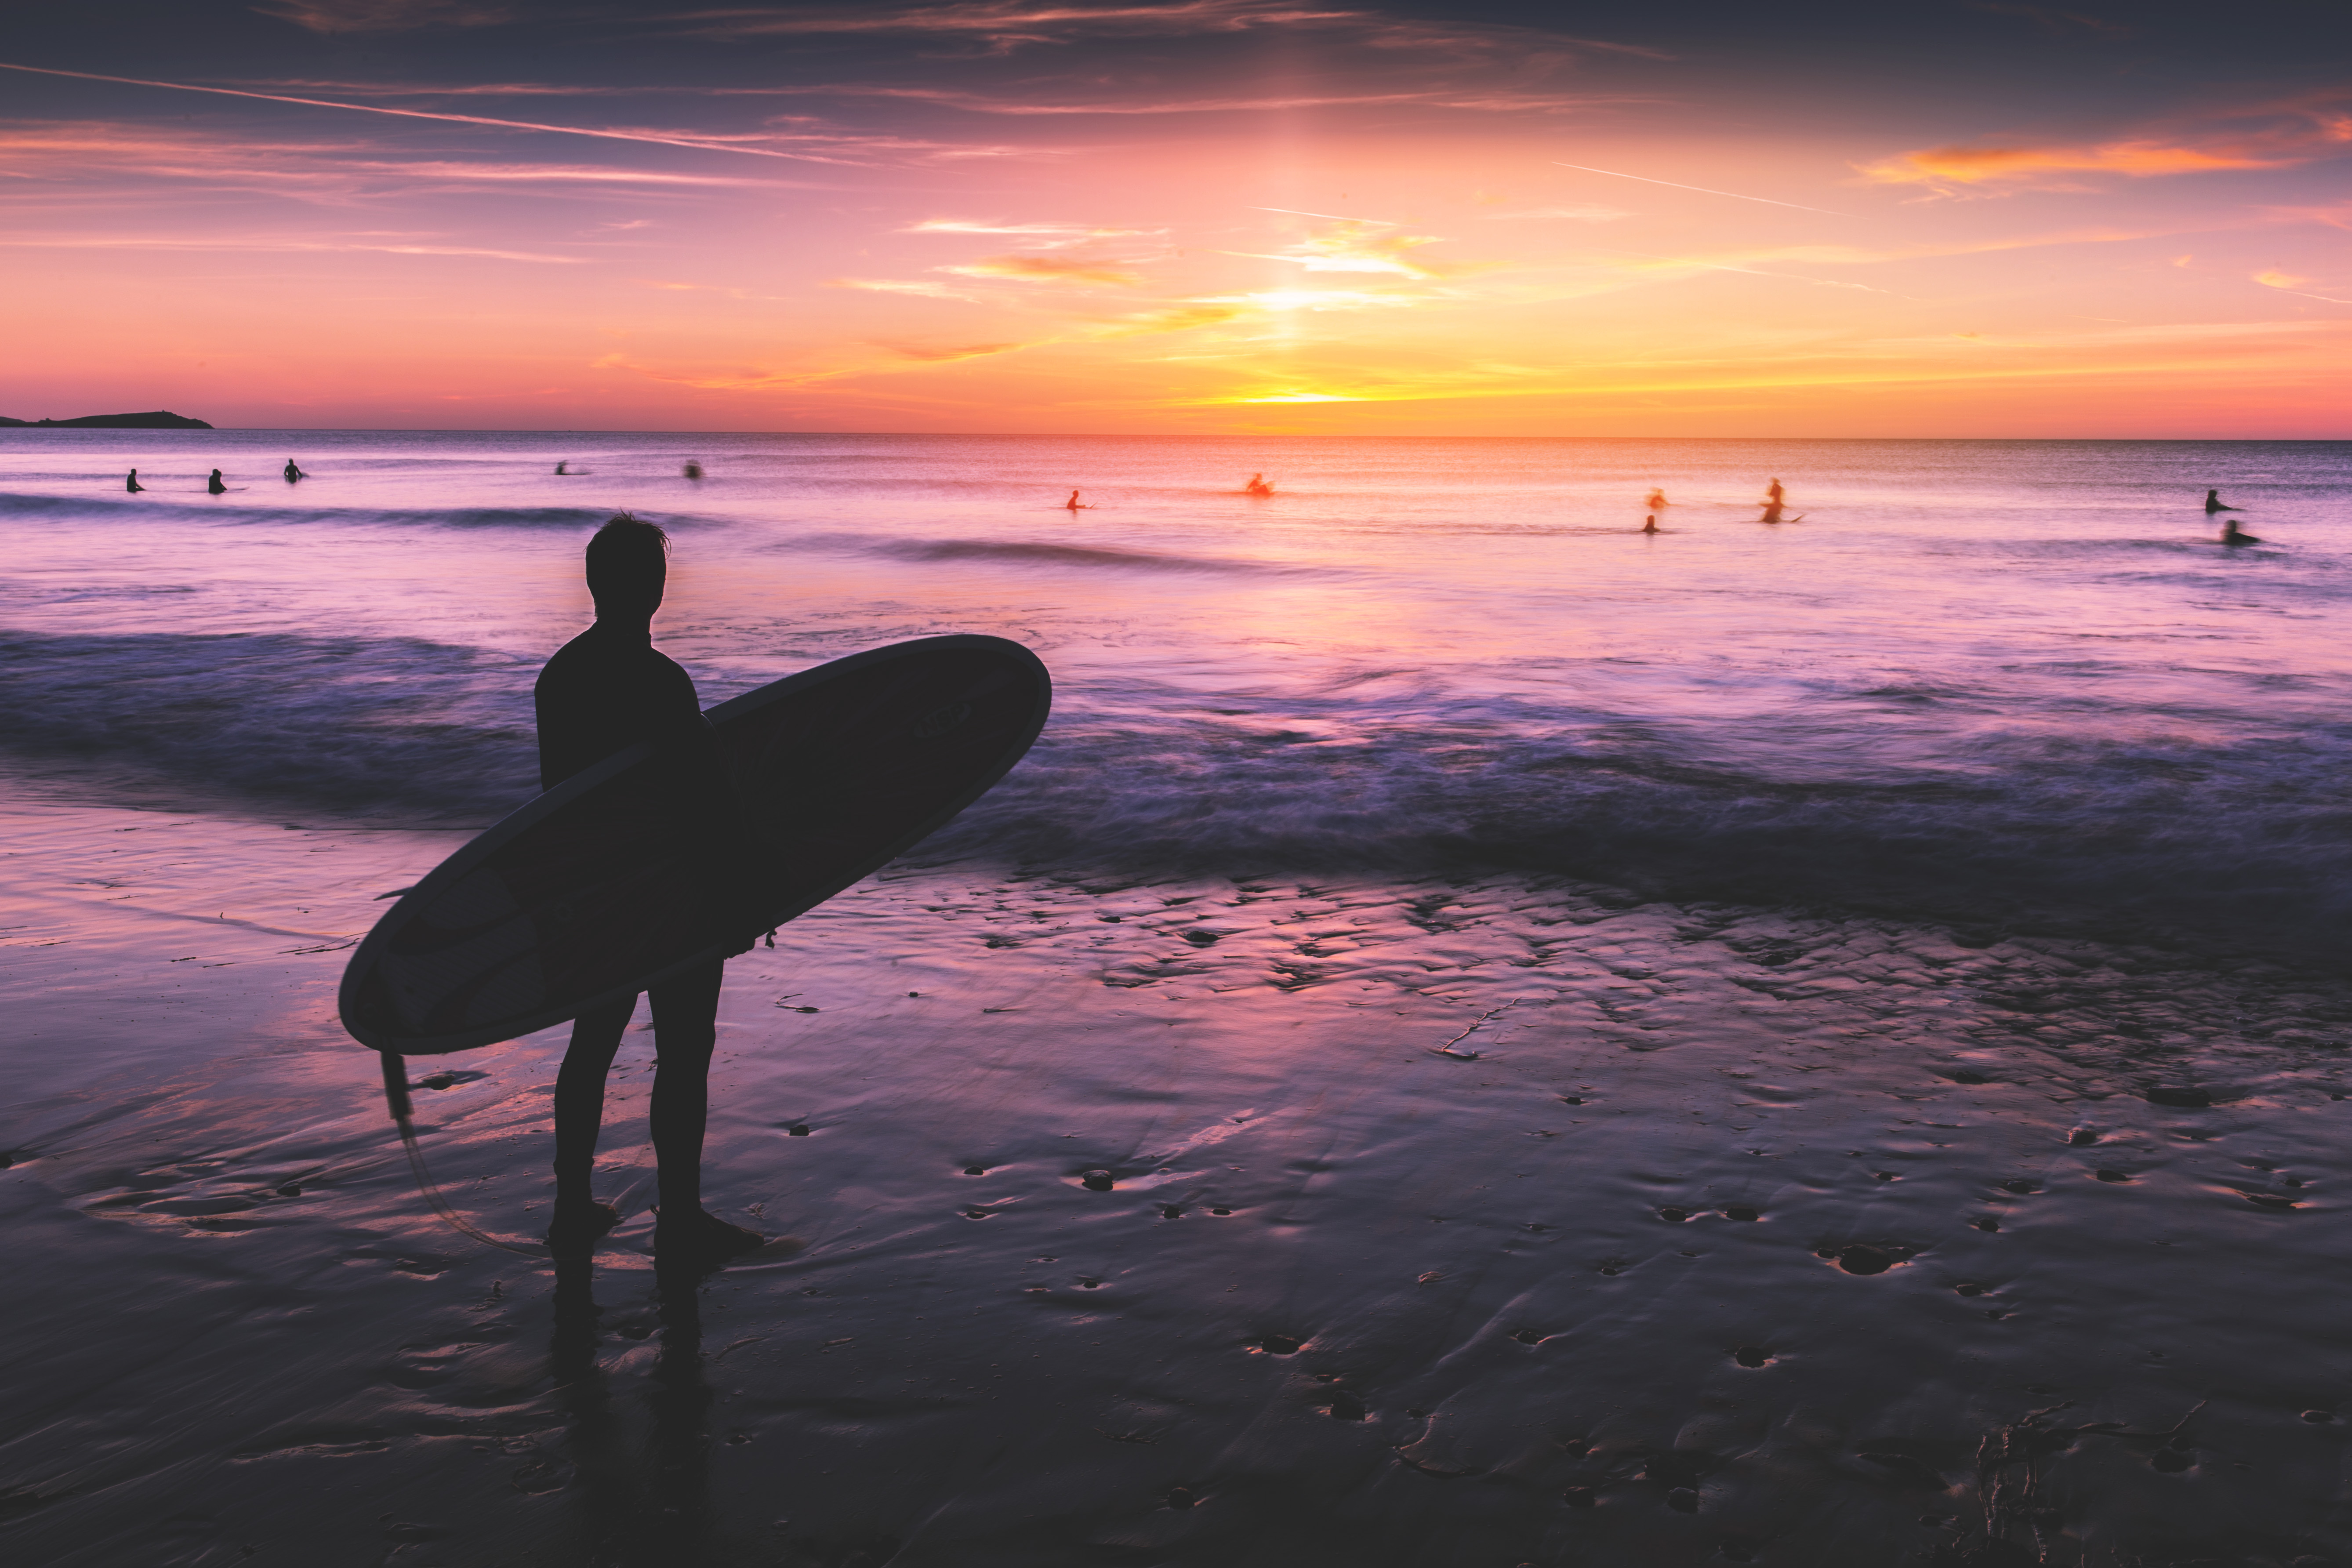 Surfer on the beach at sunset, surfer, surfing, sunset, ocean, sea, ocean, water, waves